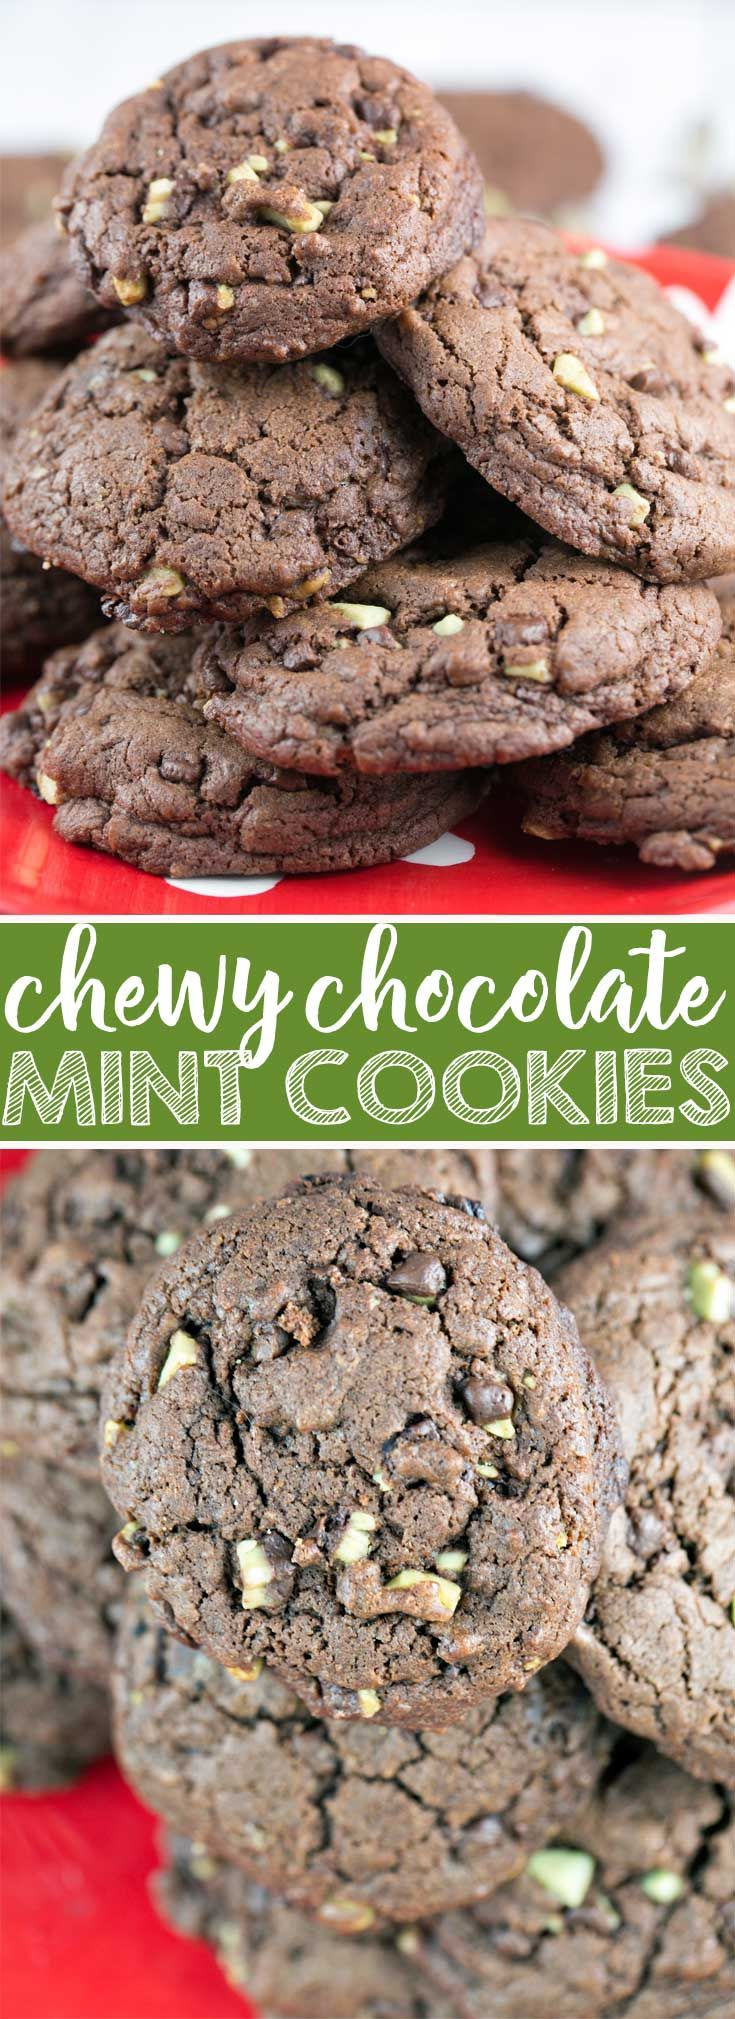 Chewy Chocolate Mint Cookies: If you like your cookies chewy and chocolatey, these cookies have your name written all over them! Made with melted chocolate and brown sugar, they're the ideal cookie for dunking in a big glass of milk. {Bunsen Burner Bakery} #cookies #christmascookies #mint #chocolatemint via @bnsnbrnrbakery